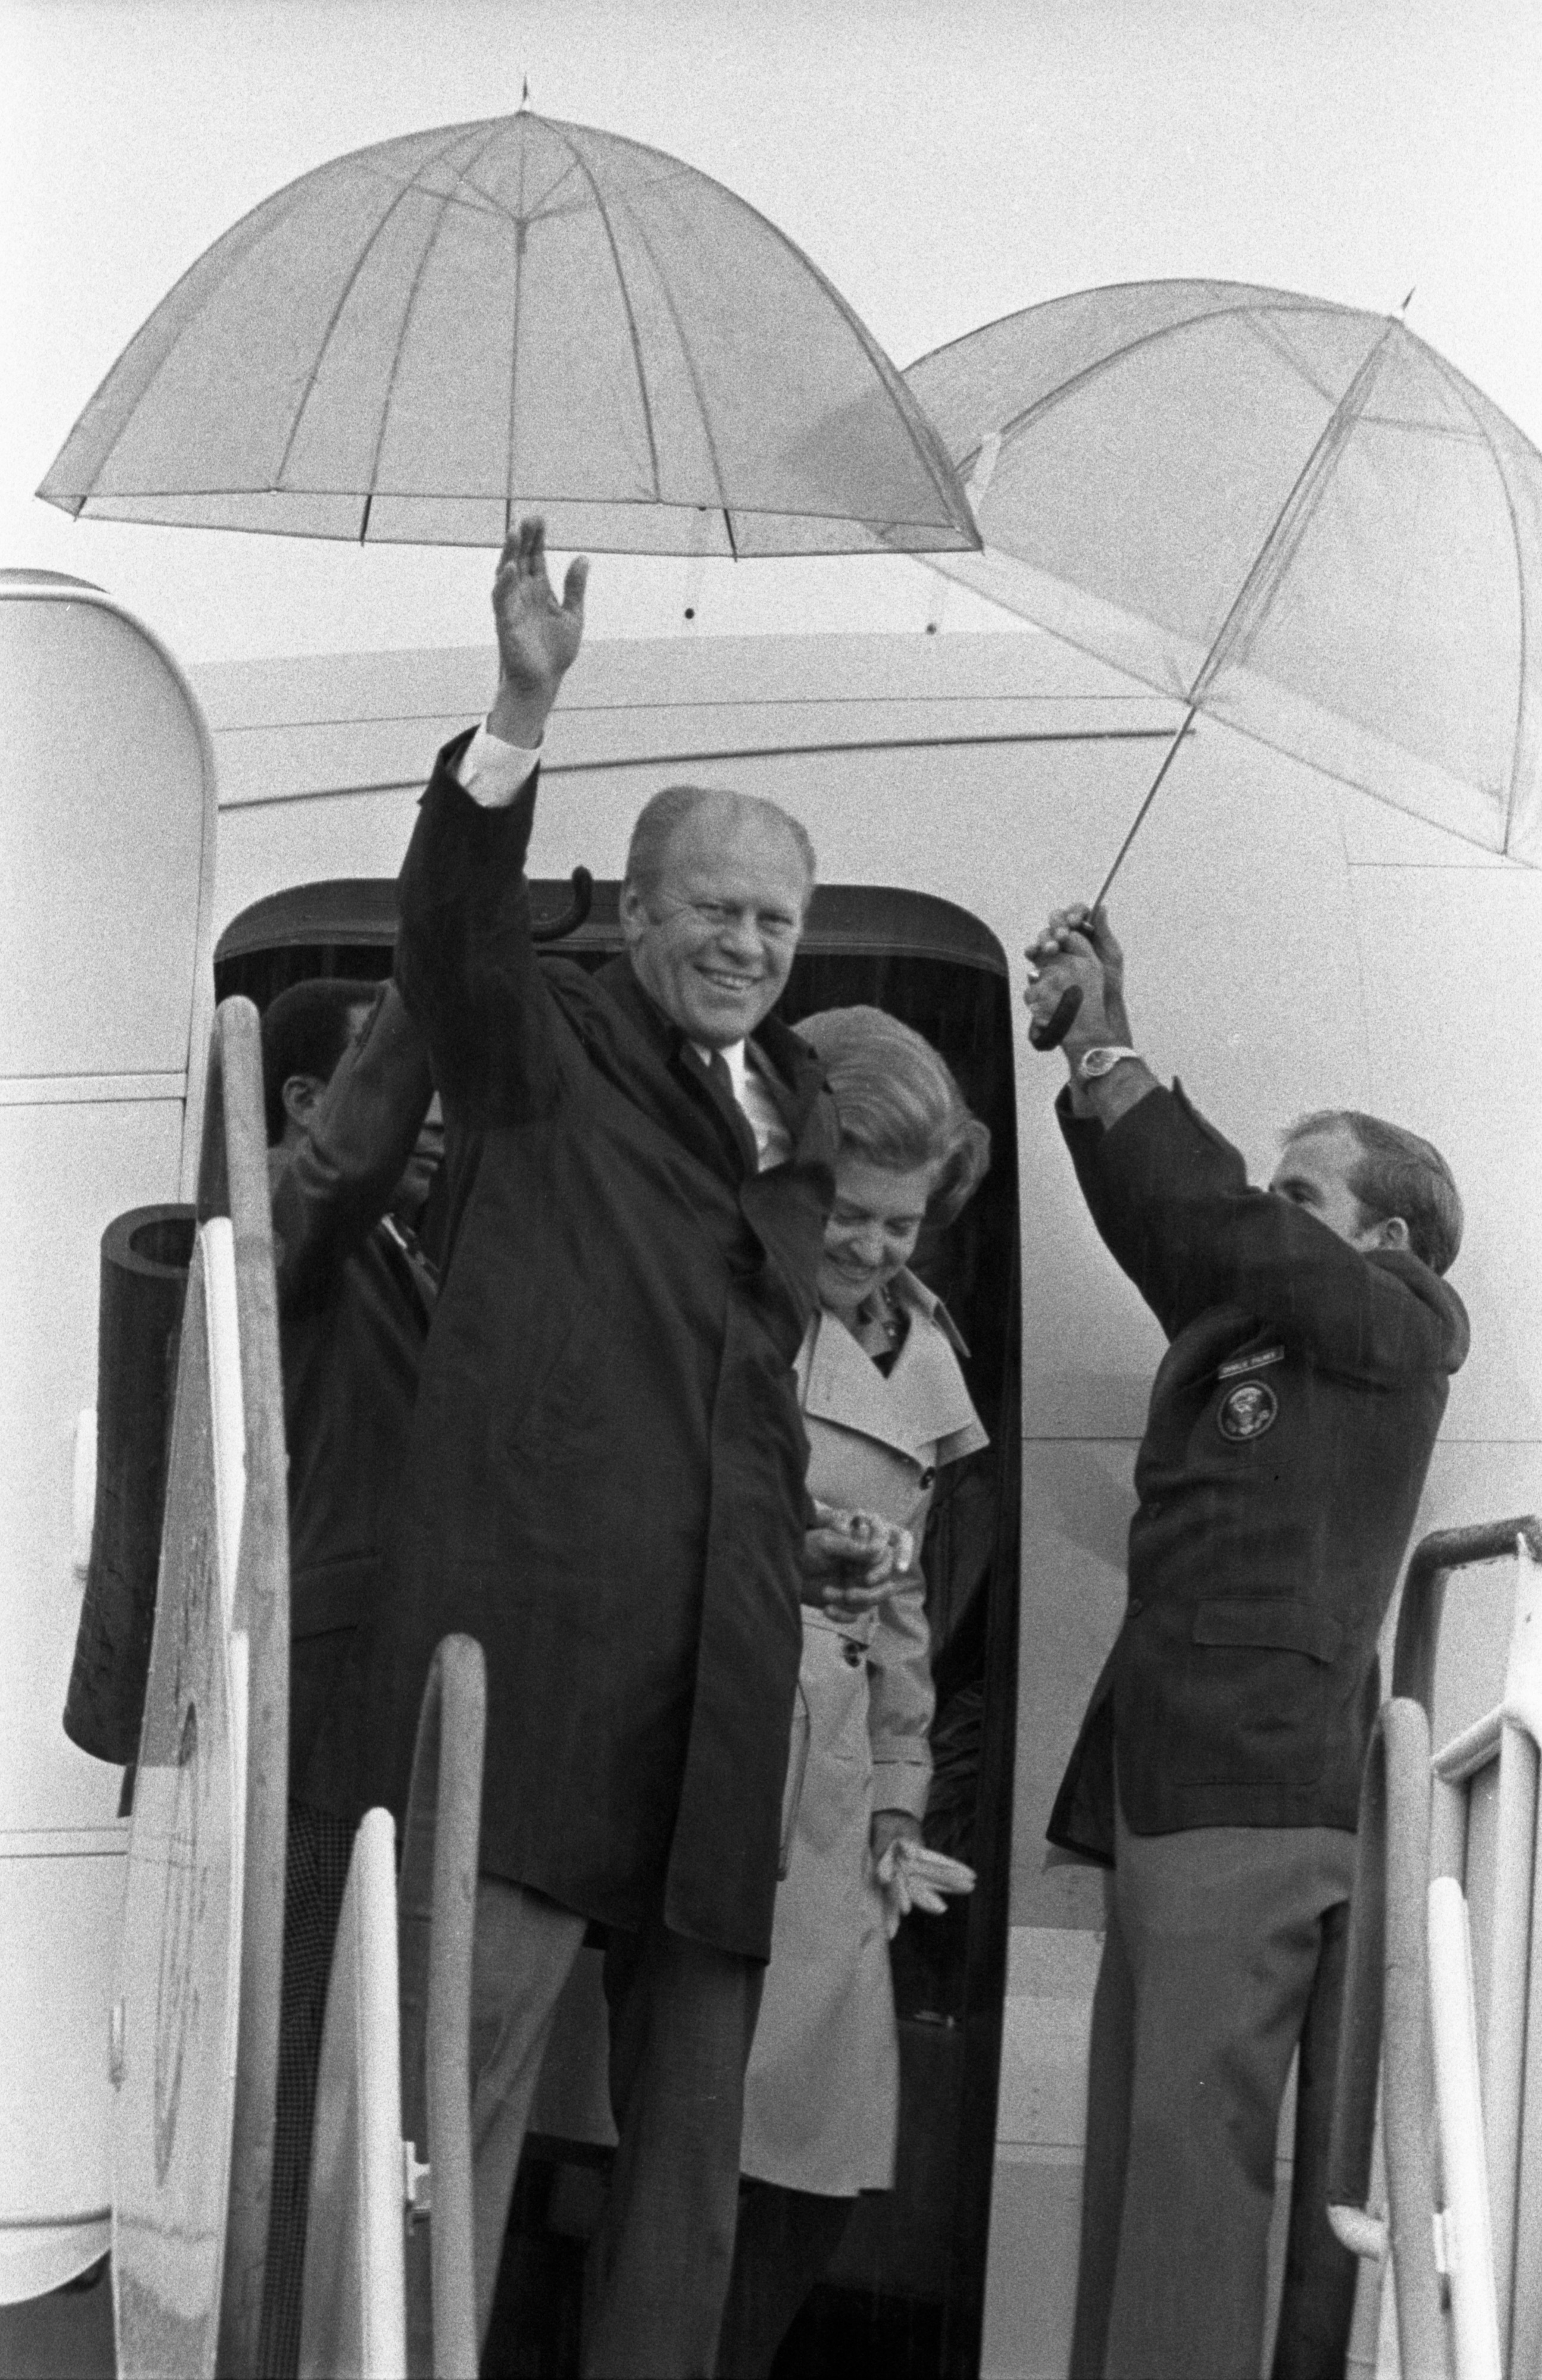 President Gerald Ford & Betty Ford Exit Plane At Willow Run Airport, September 16, 1976 image